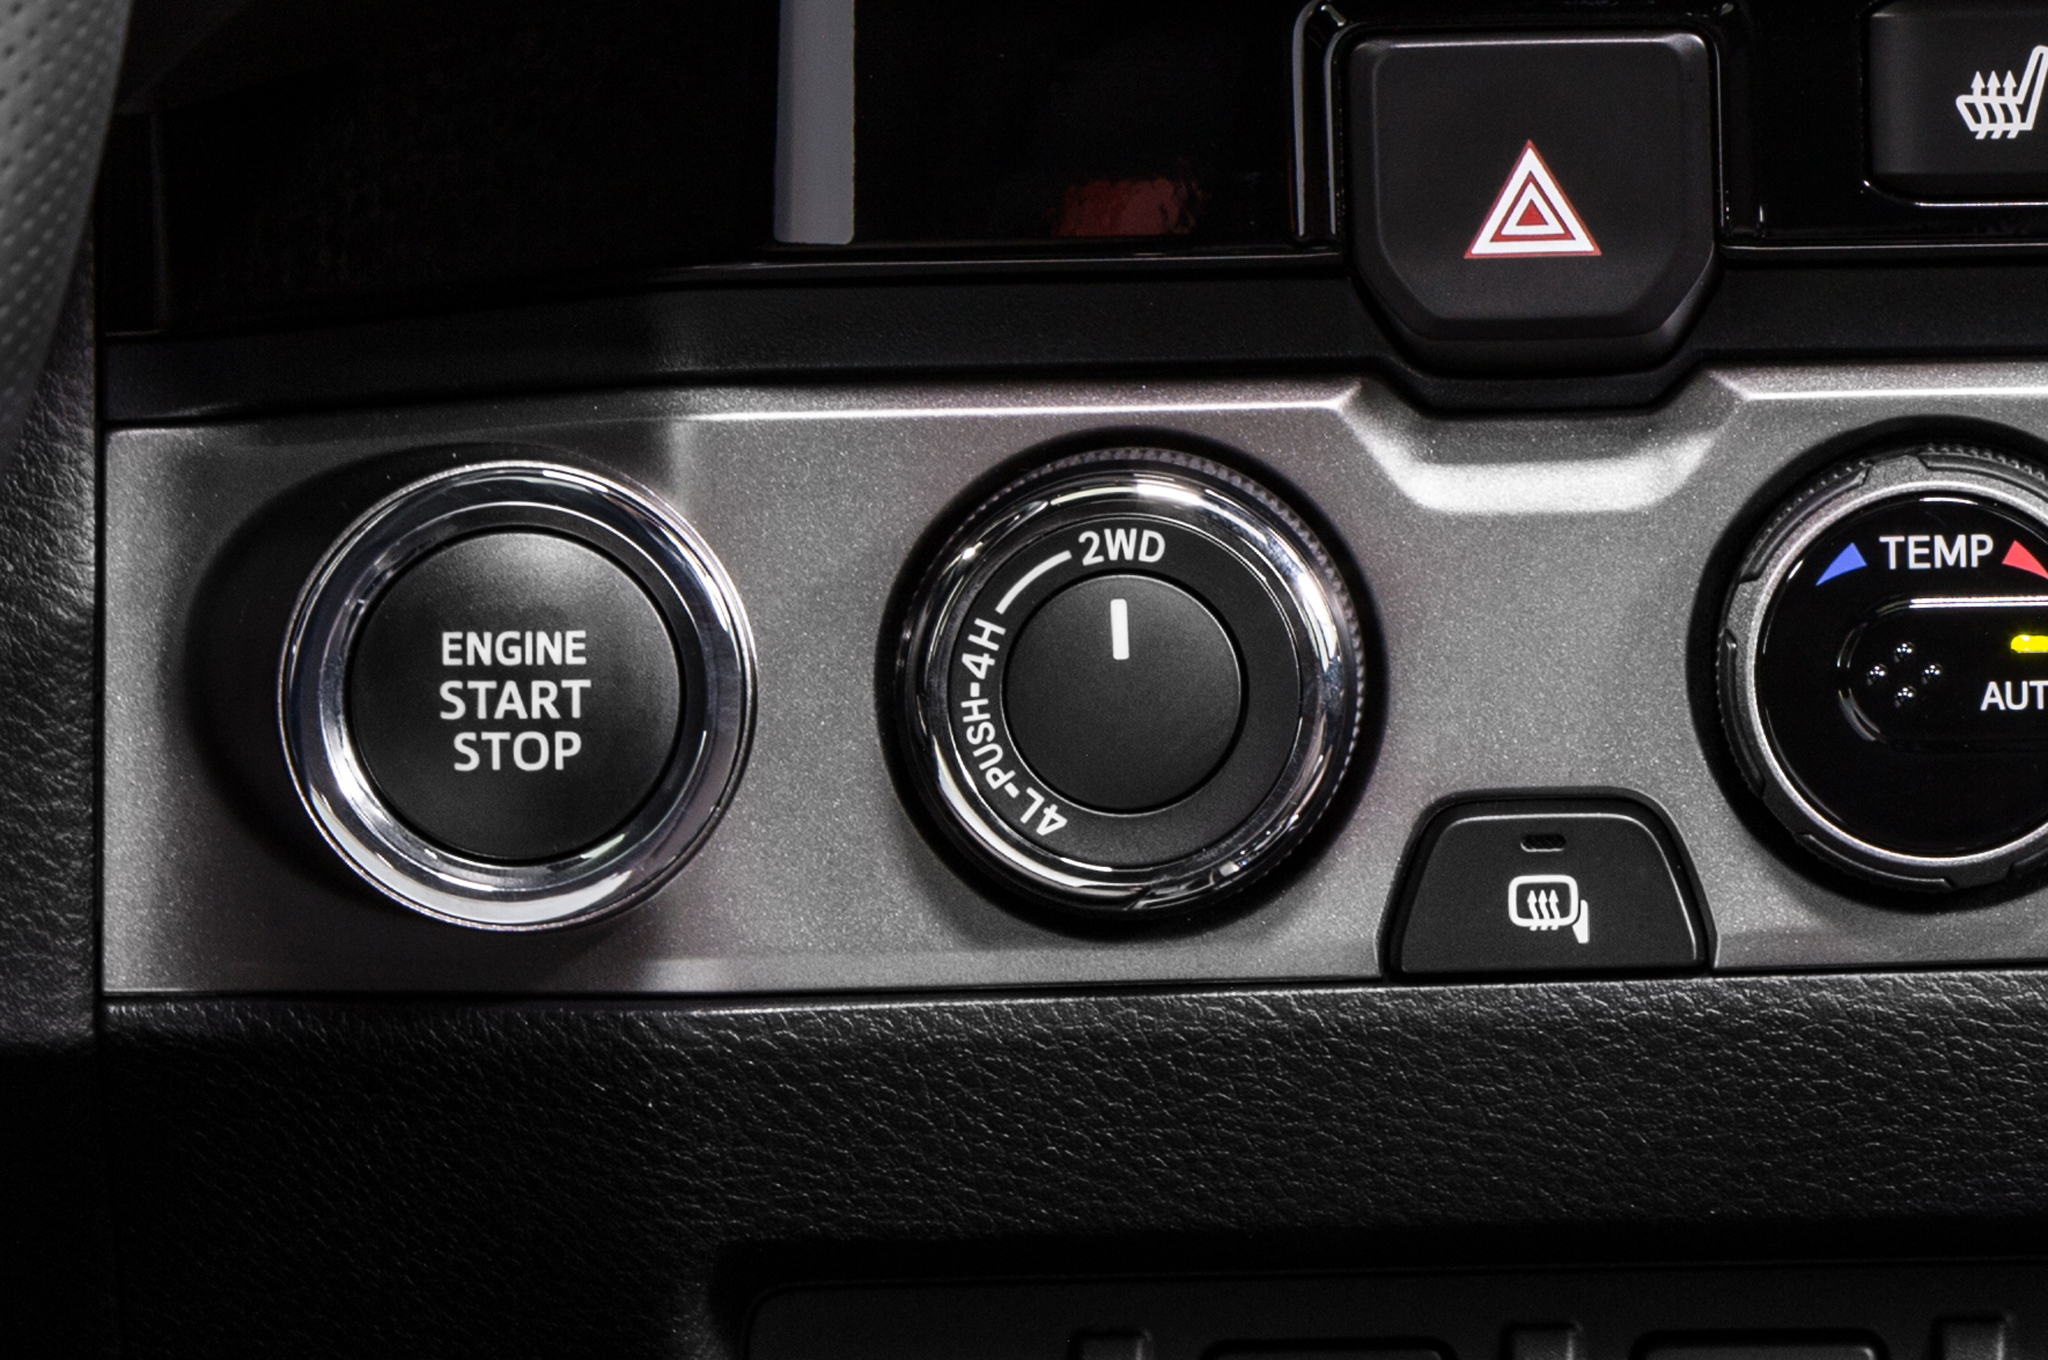 Toyota Sienna 2010-2018 Owners Manual: Changing engine switch modes